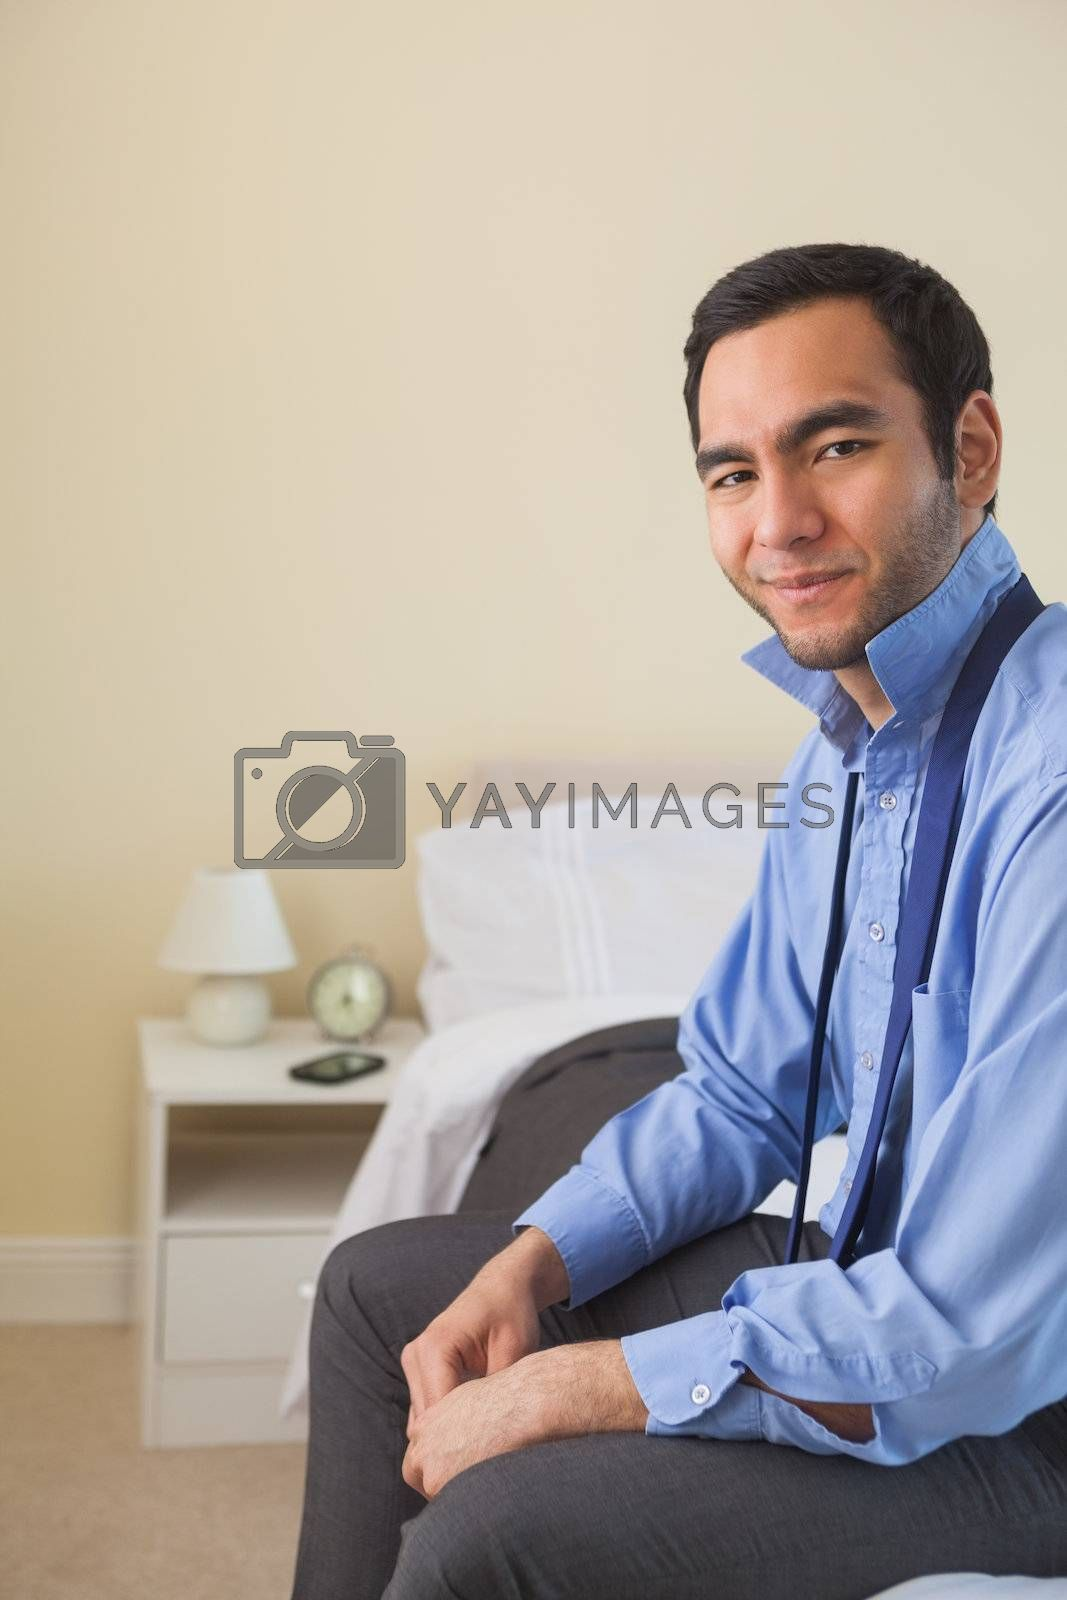 Satisfied man looking at camera and relaxing sitting on his bed by Wavebreakmedia